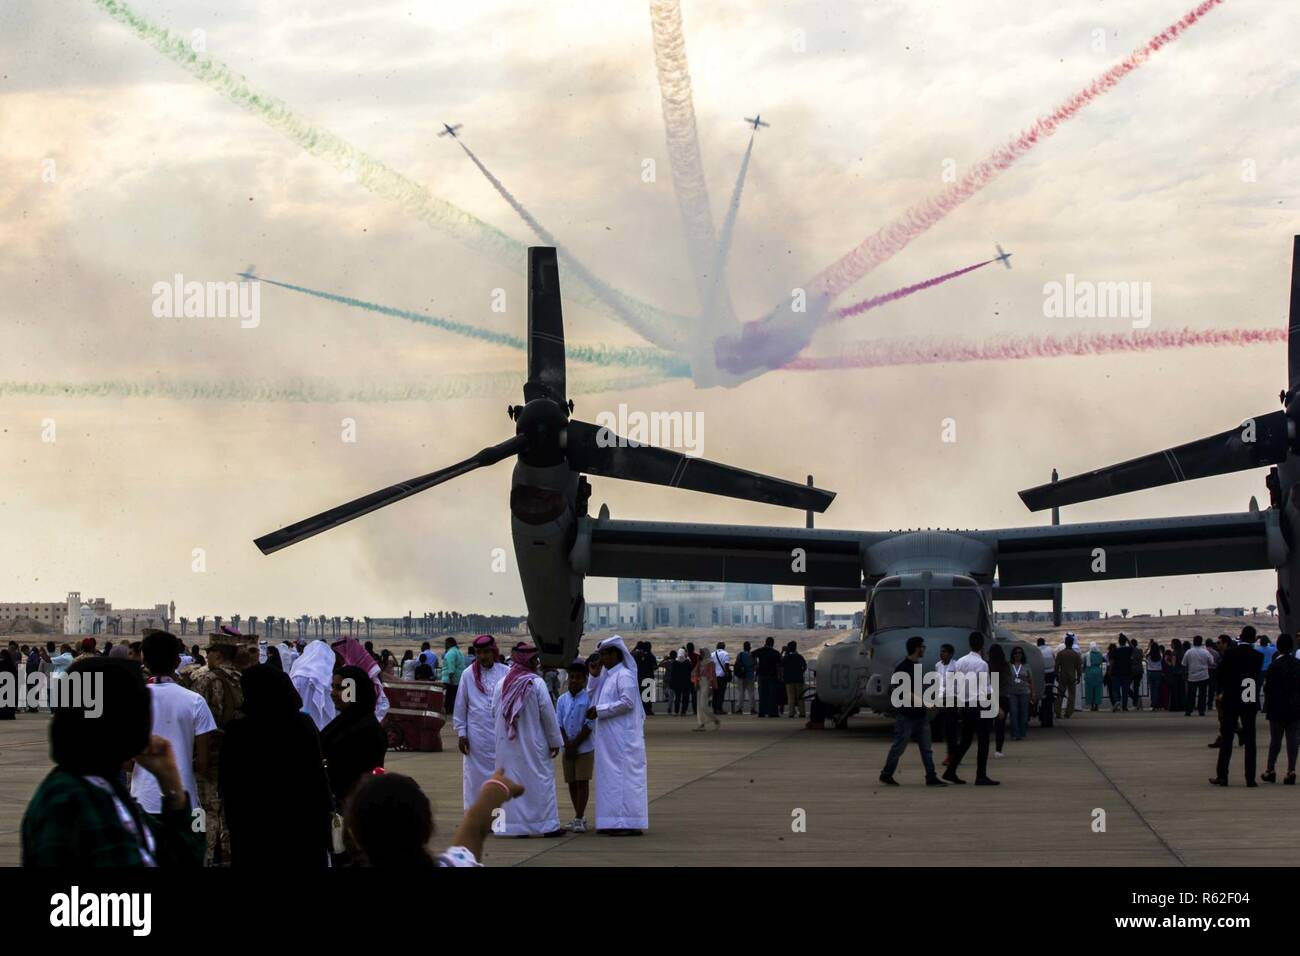 SAKHIR AIRBASE, Bahrain (Nov. 16, 2018) - Members of the Italian Frecce Tricolori Aereo fly their Aermacchi MB-339 over an MV-22B Osprey during the Bahrain International Airshow (BIAS) 18. BIAS, a biennial event, is an opportunity to strengthen military-to-military relationships with regional partners and European allies. - Stock Image